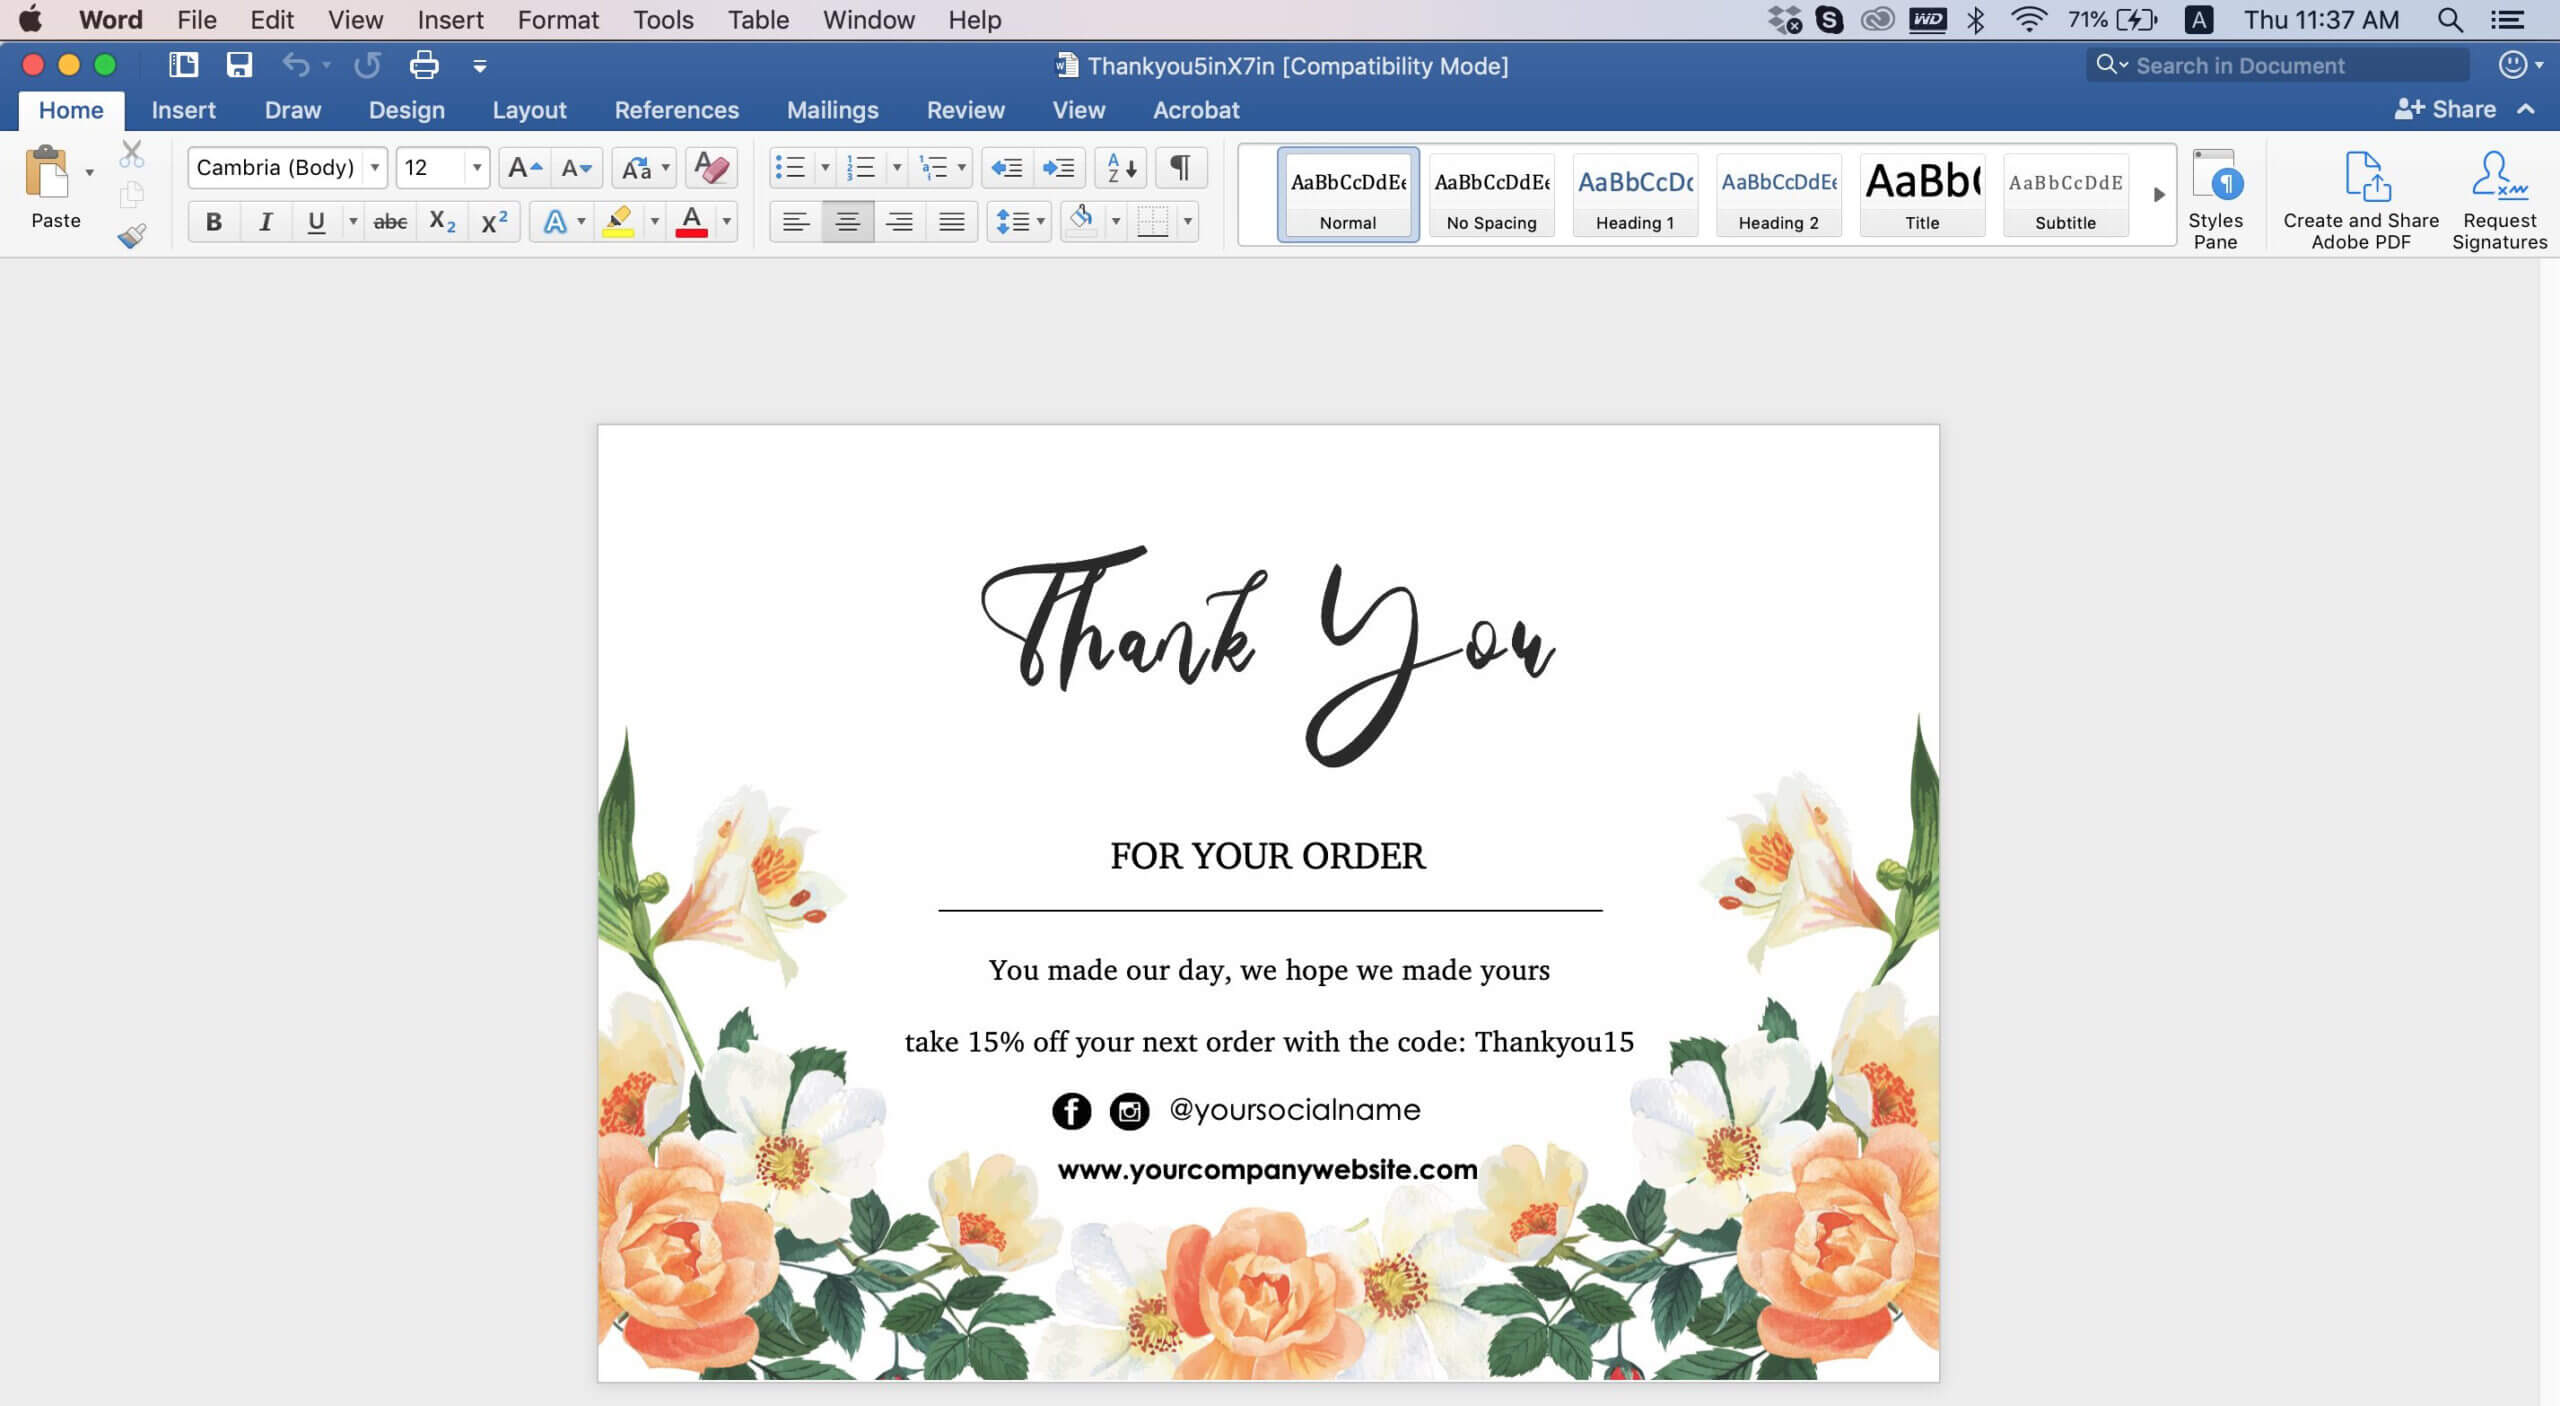 009 Editable Thank You Post Card Template Word Top Ideas Doc For Thank You Card Template Word